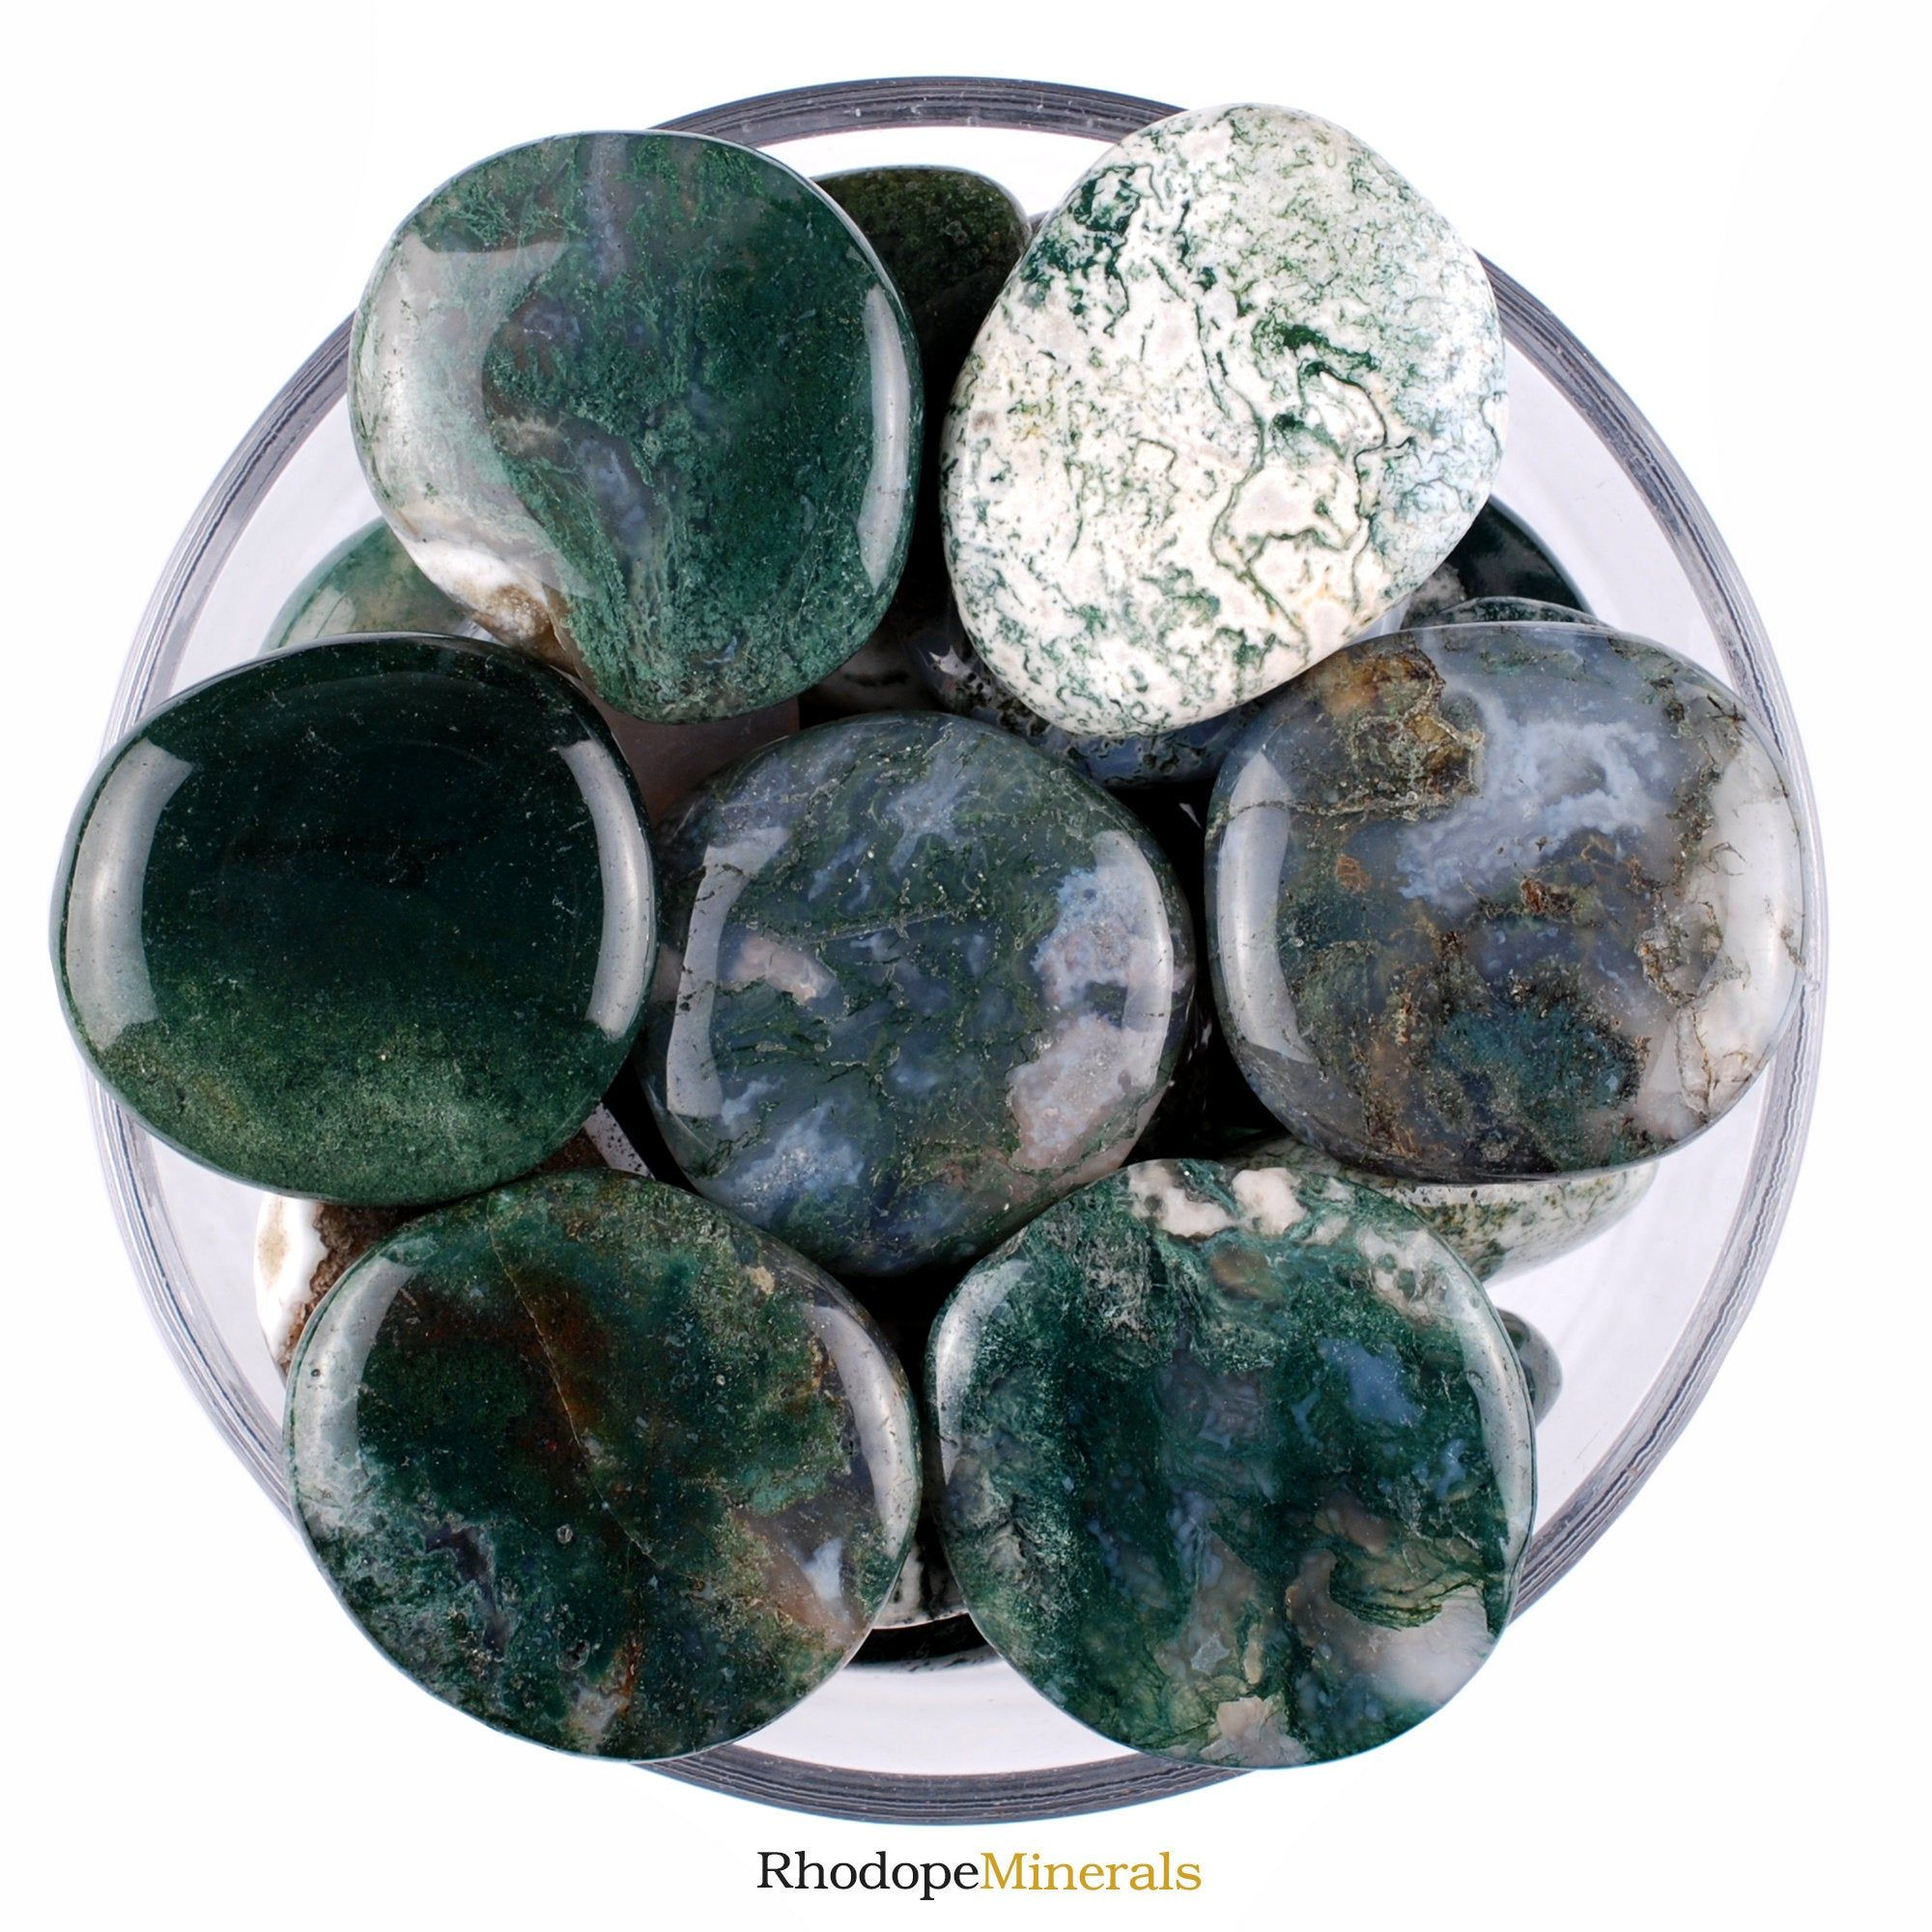 One 1 Moss Agate Smooth Stone Moss Agate Palm Stone Moss Agate Smooth Stones Moss Agate Palm Stones Moss Agate Smooth Stones Moss Agate In 2020 Moss Agate Stone Agate